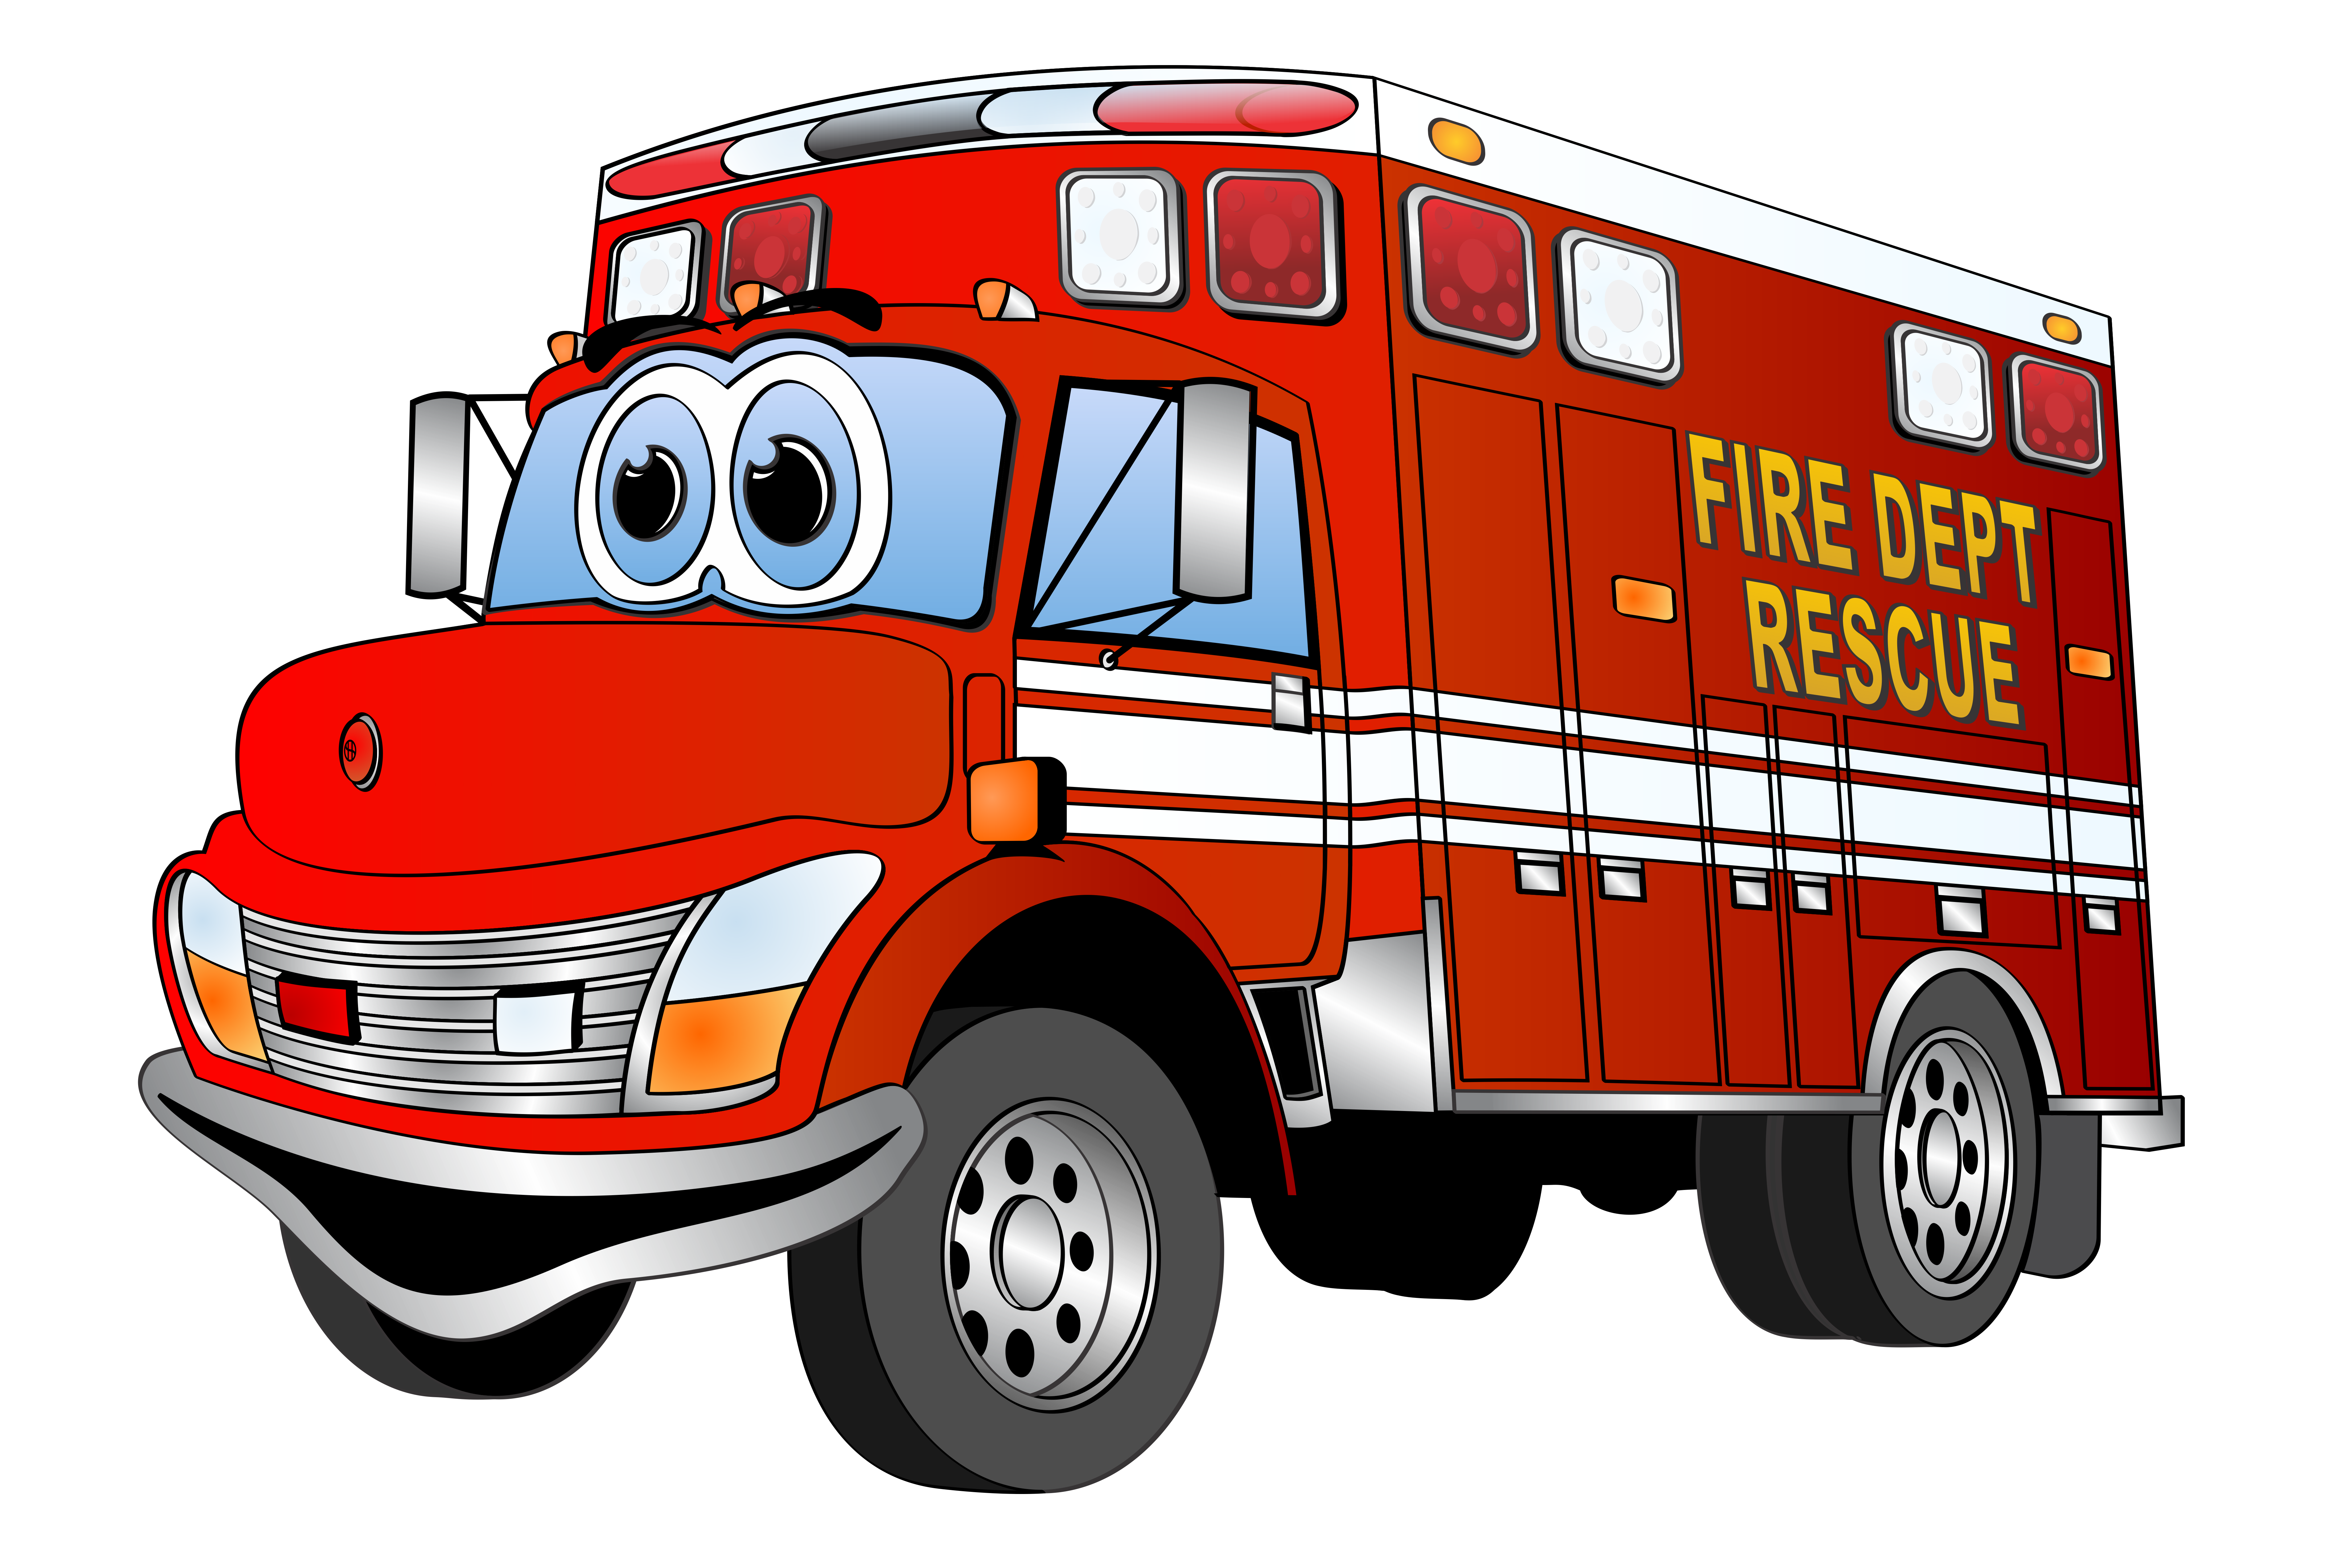 Picture Of Firetruck - ClipArt .-Picture Of Firetruck - ClipArt .-15